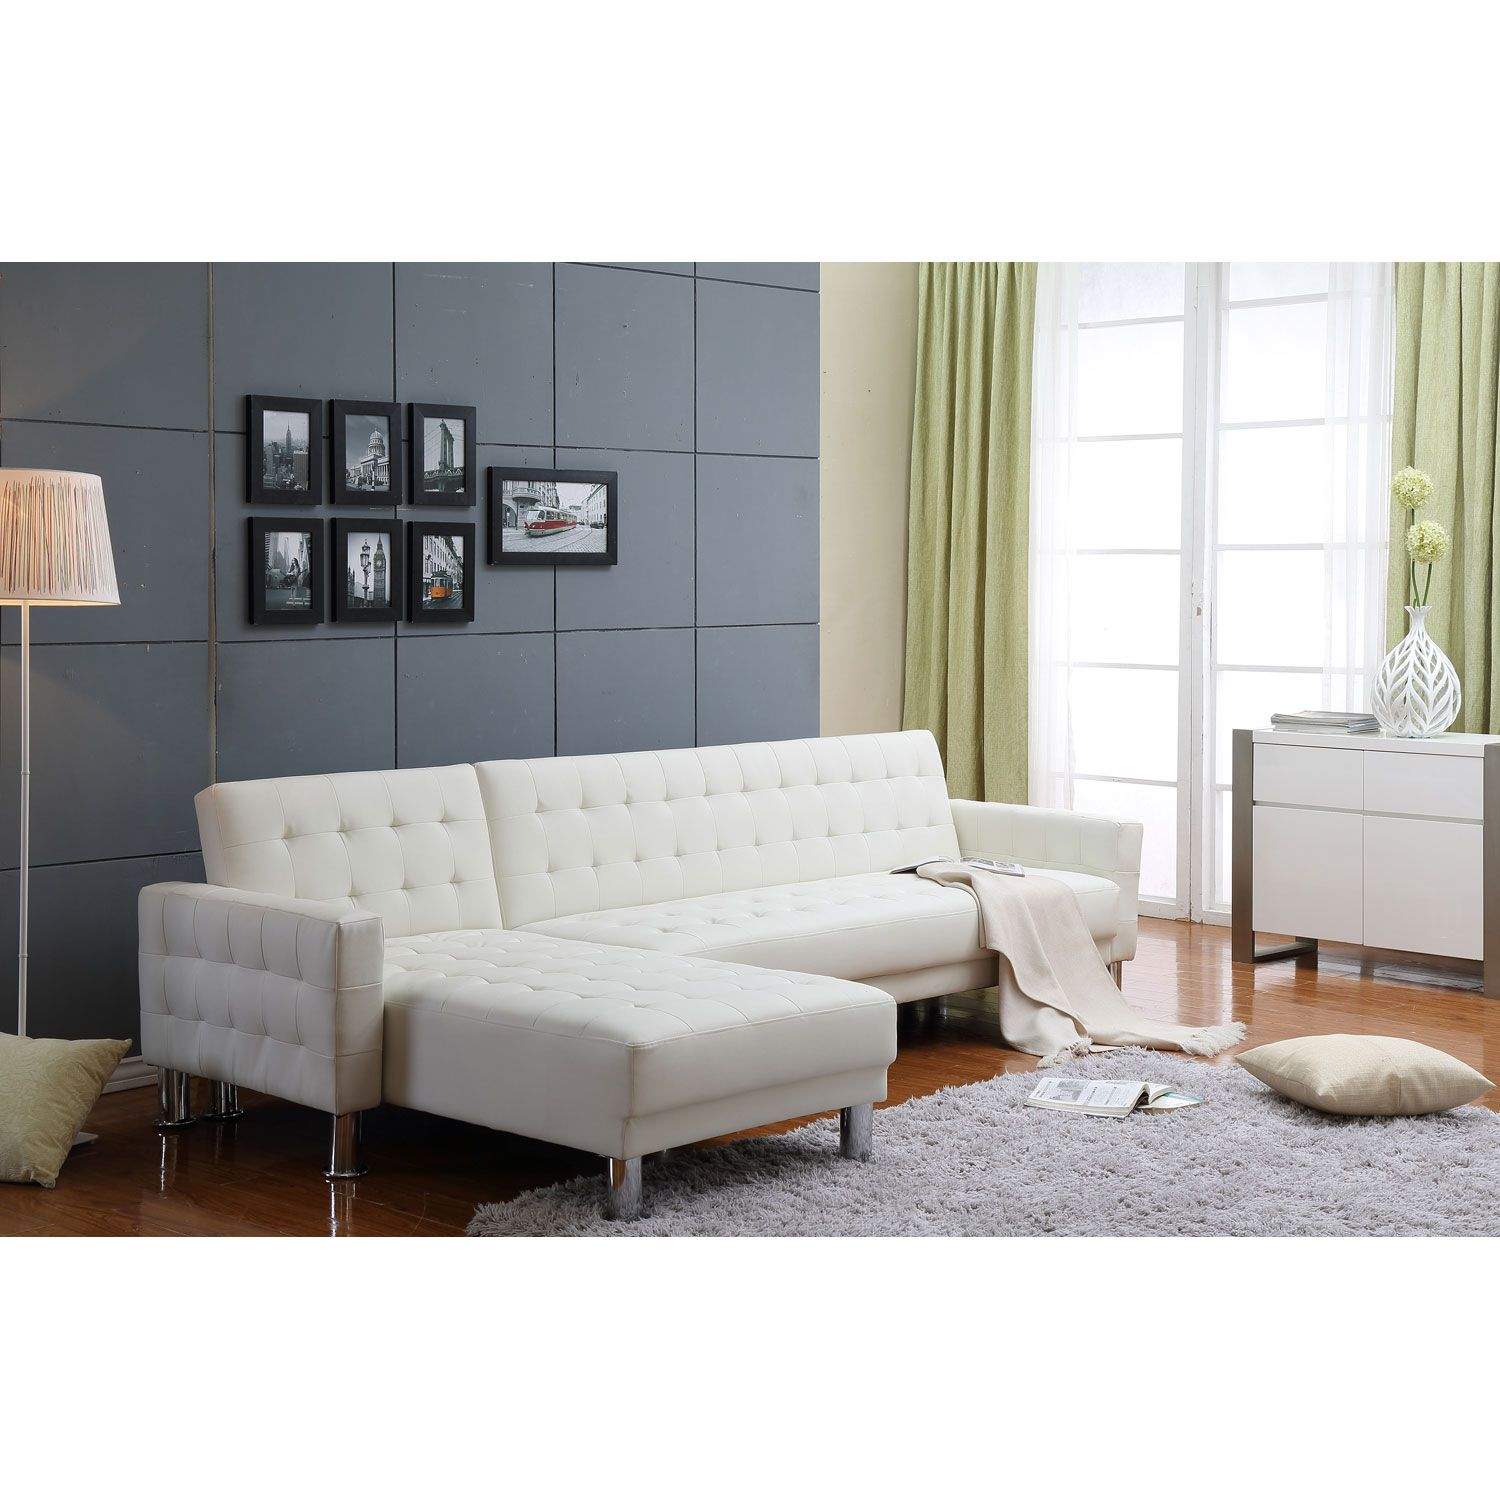 Marsden White Tufted Bi Cast Leather 2 Piece Sectional Sofa Bed Thy Hom Sleeper Sofas